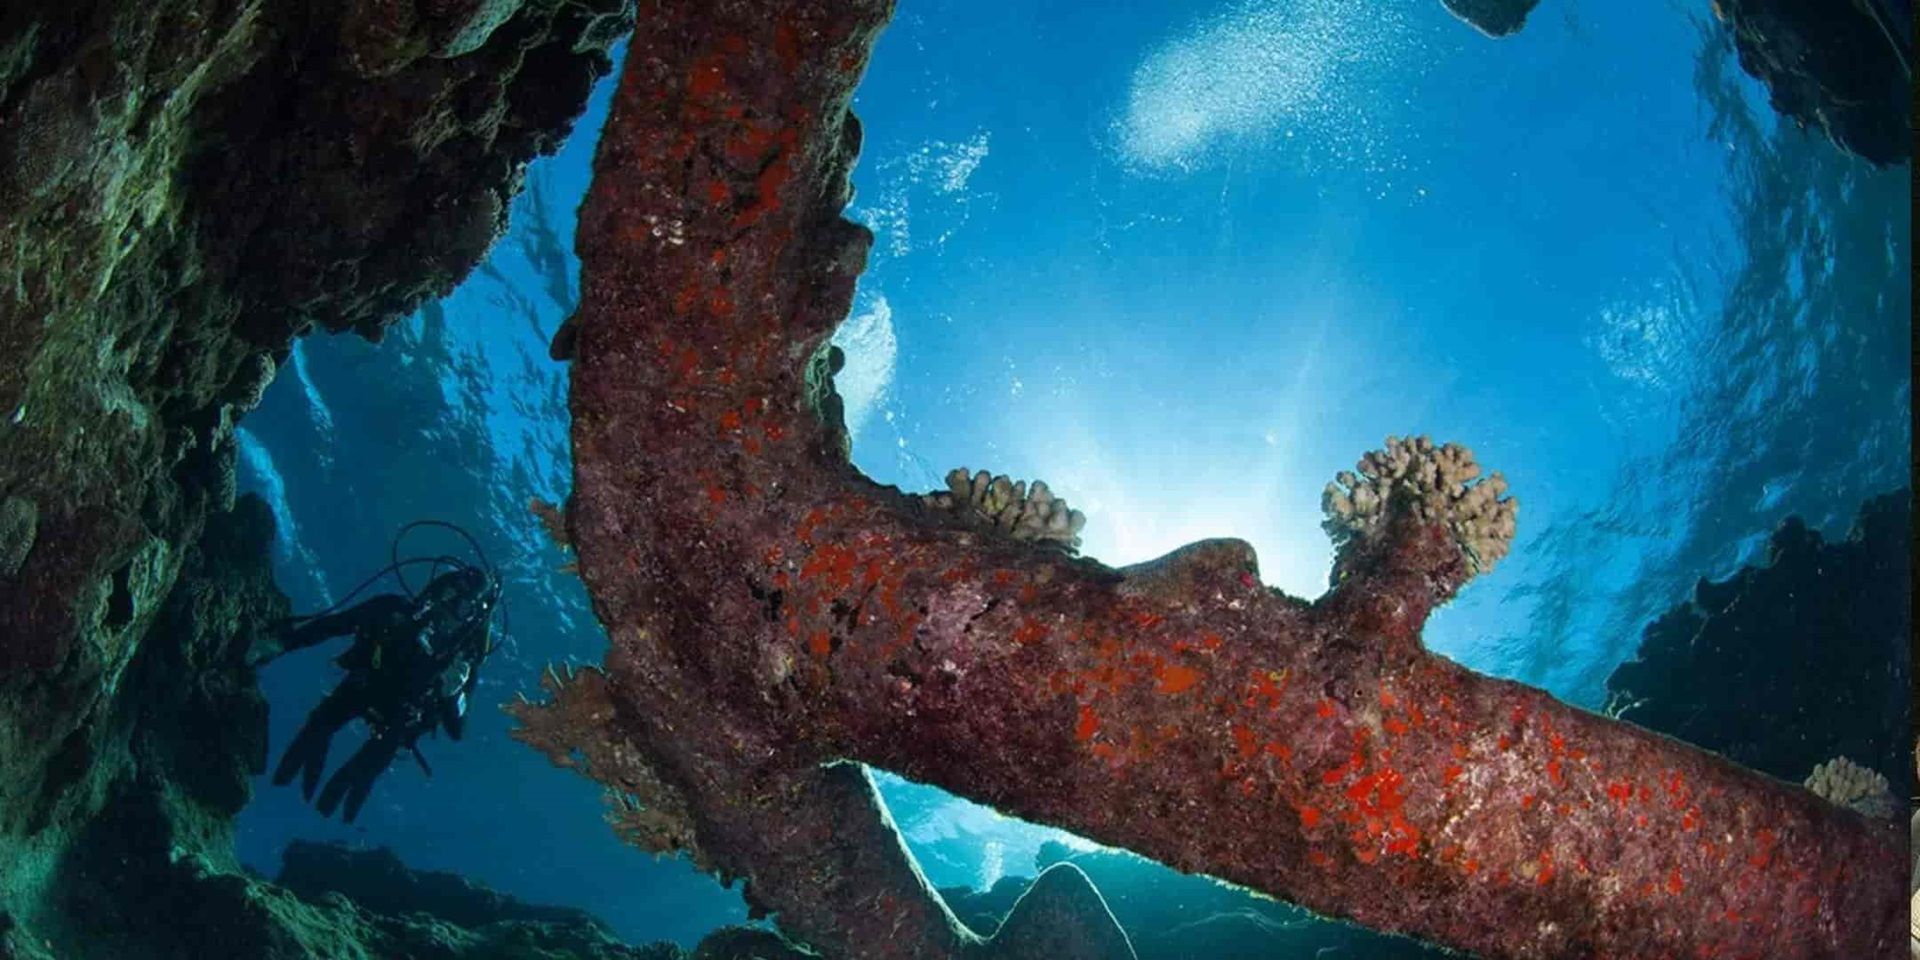 Morgans anchors at site KR11. Image: Julia Sumerling, Silentworld Foundation